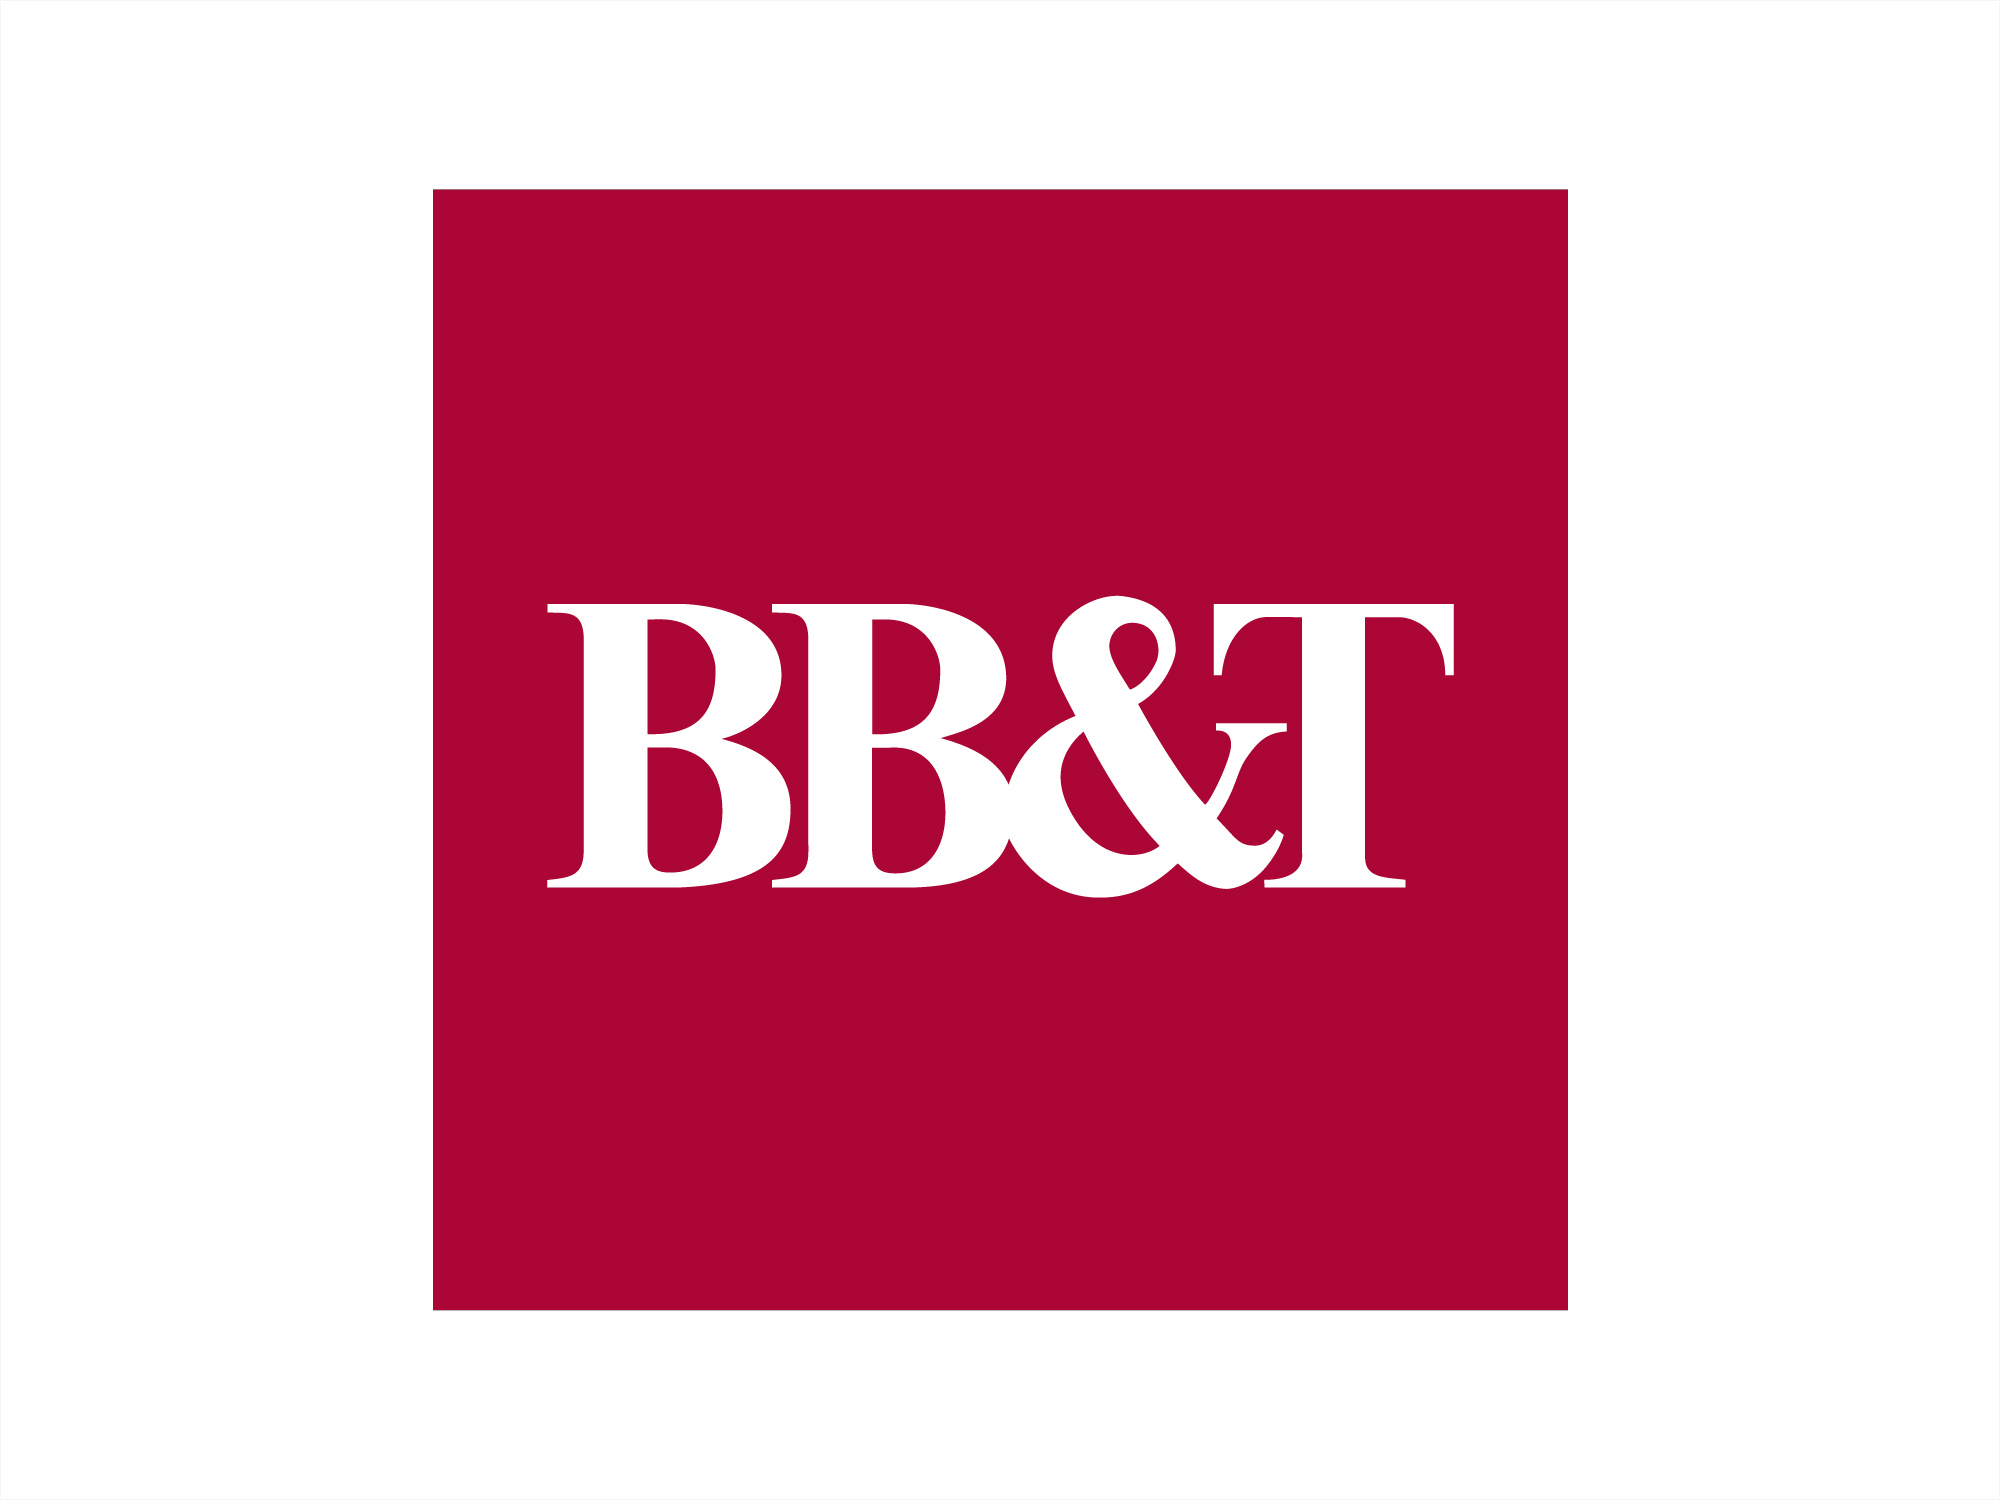 Millions of BB&T customers affected by outage